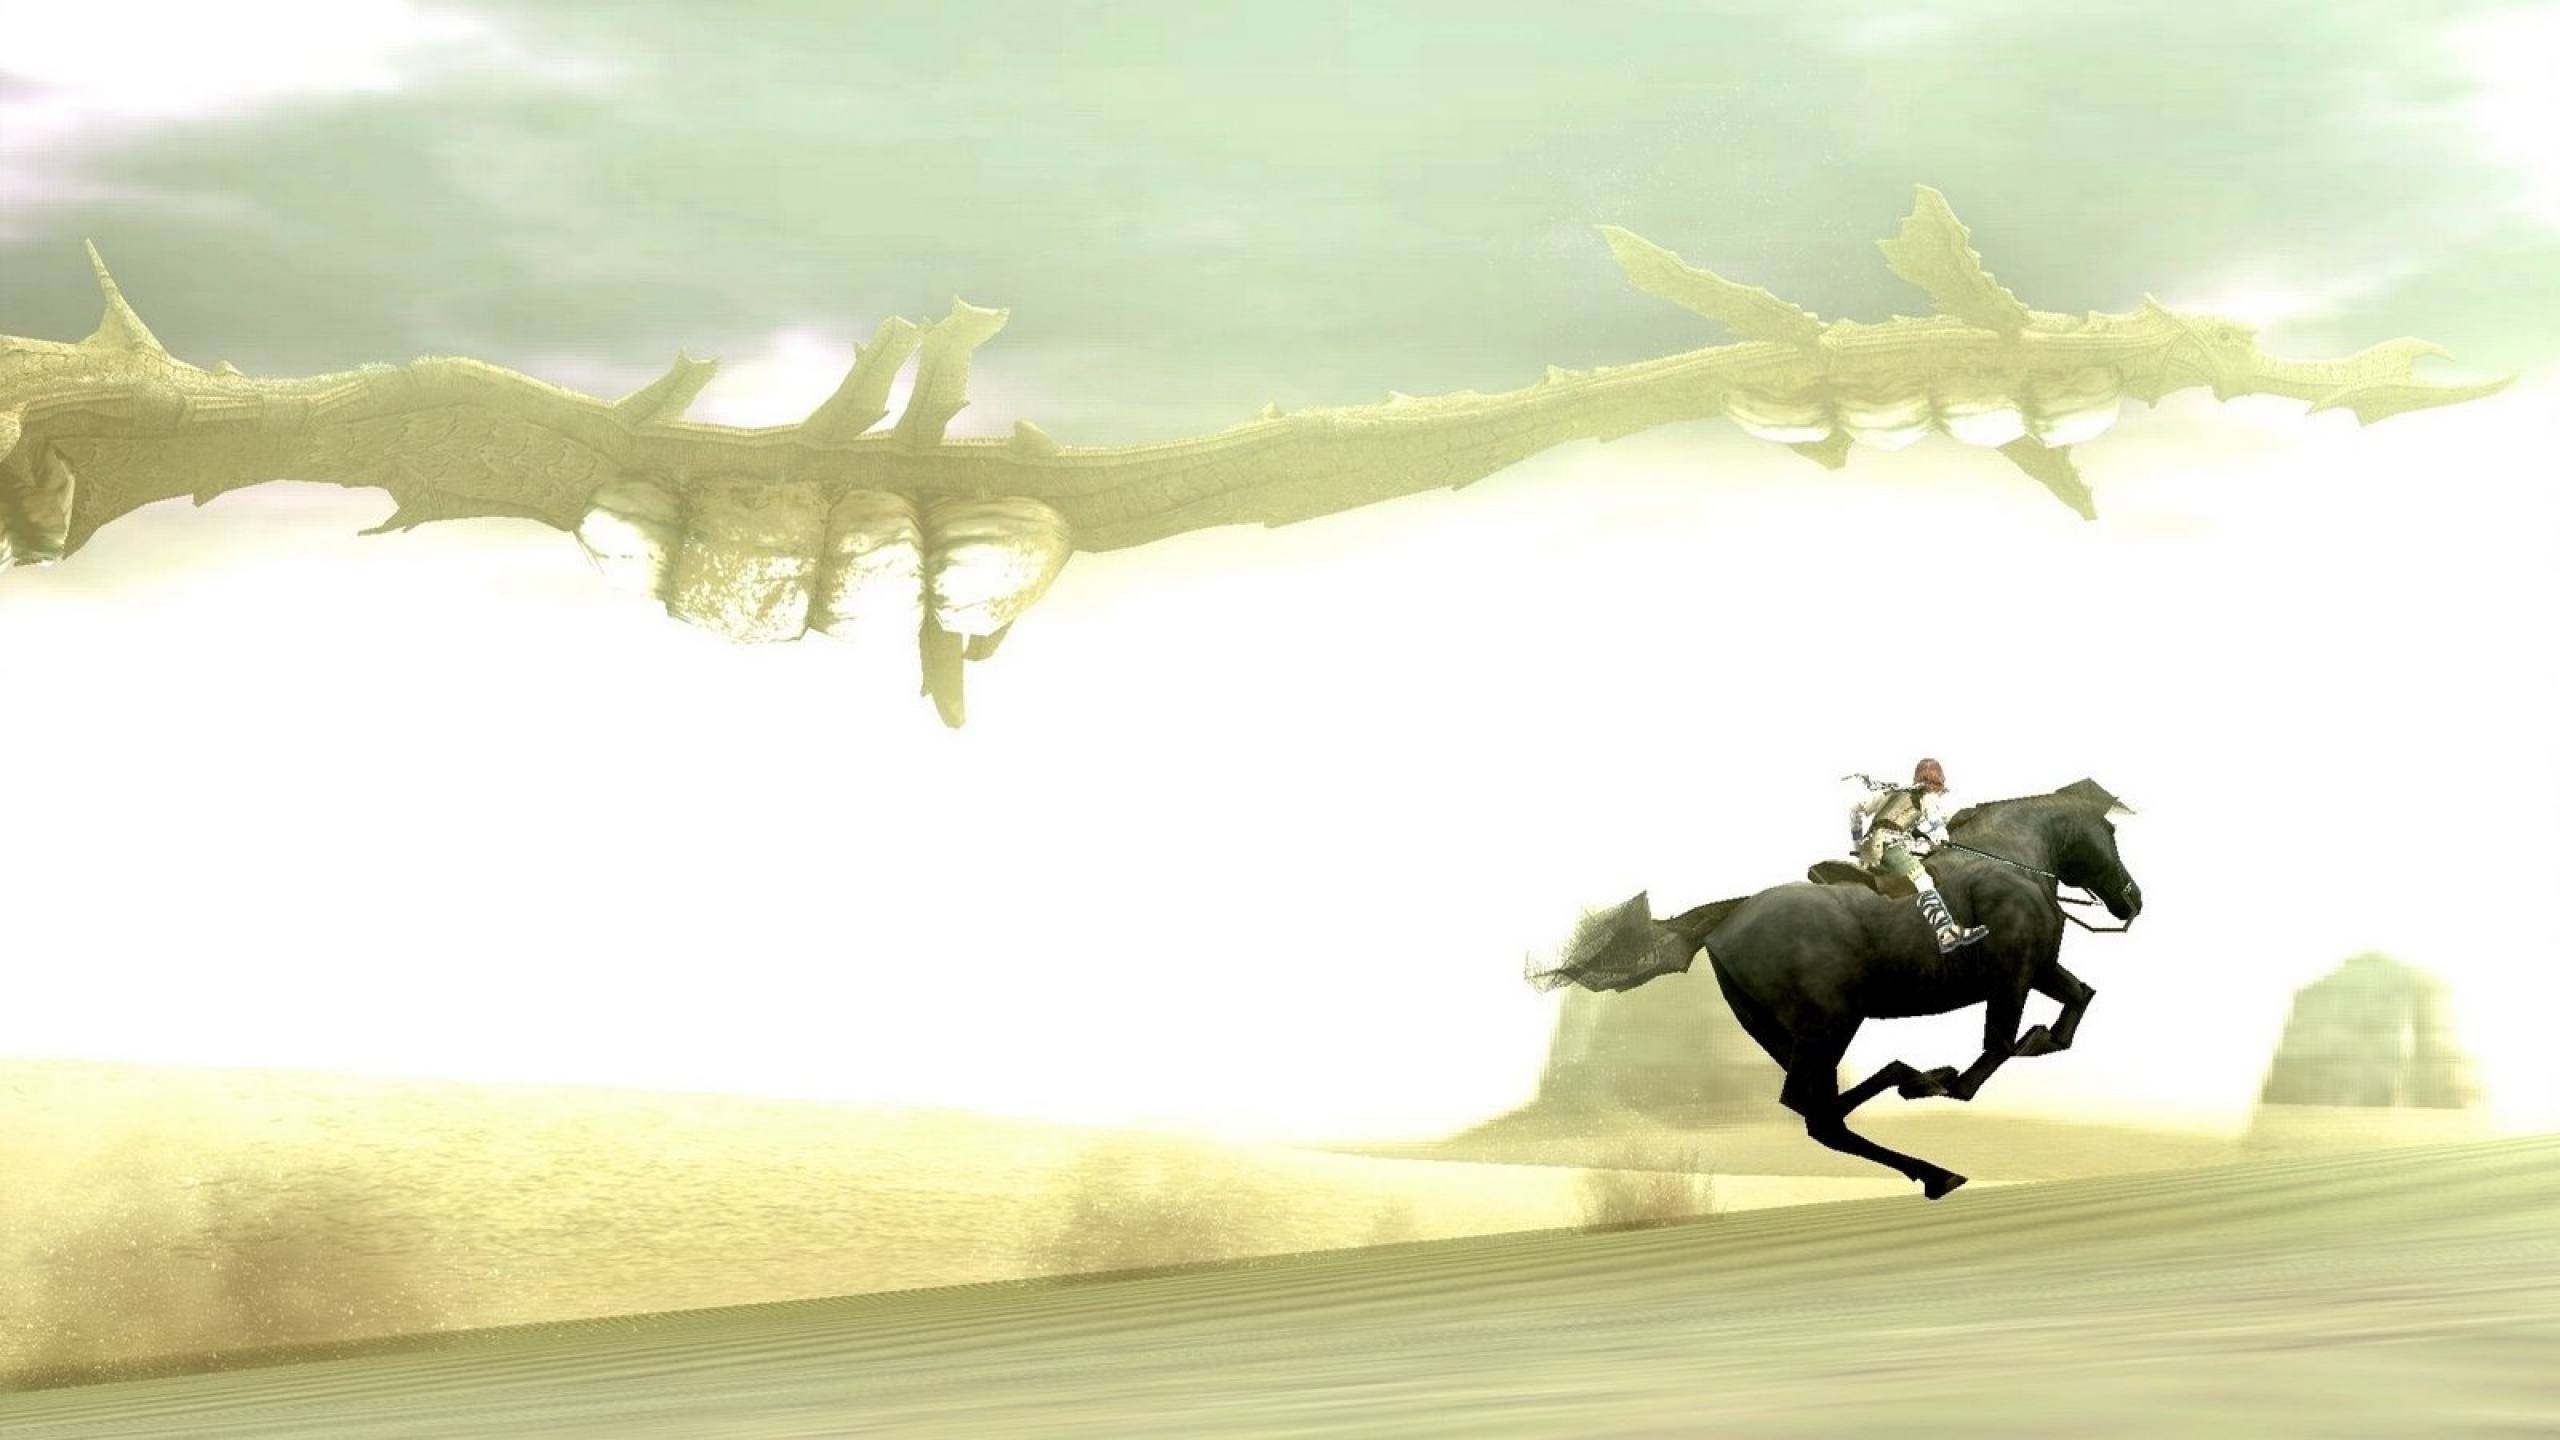 video_games_rider_horses_shadow_of_the_colossus_1600x900_wallpaper_wallpaper_2560x1440_www-wall321-com